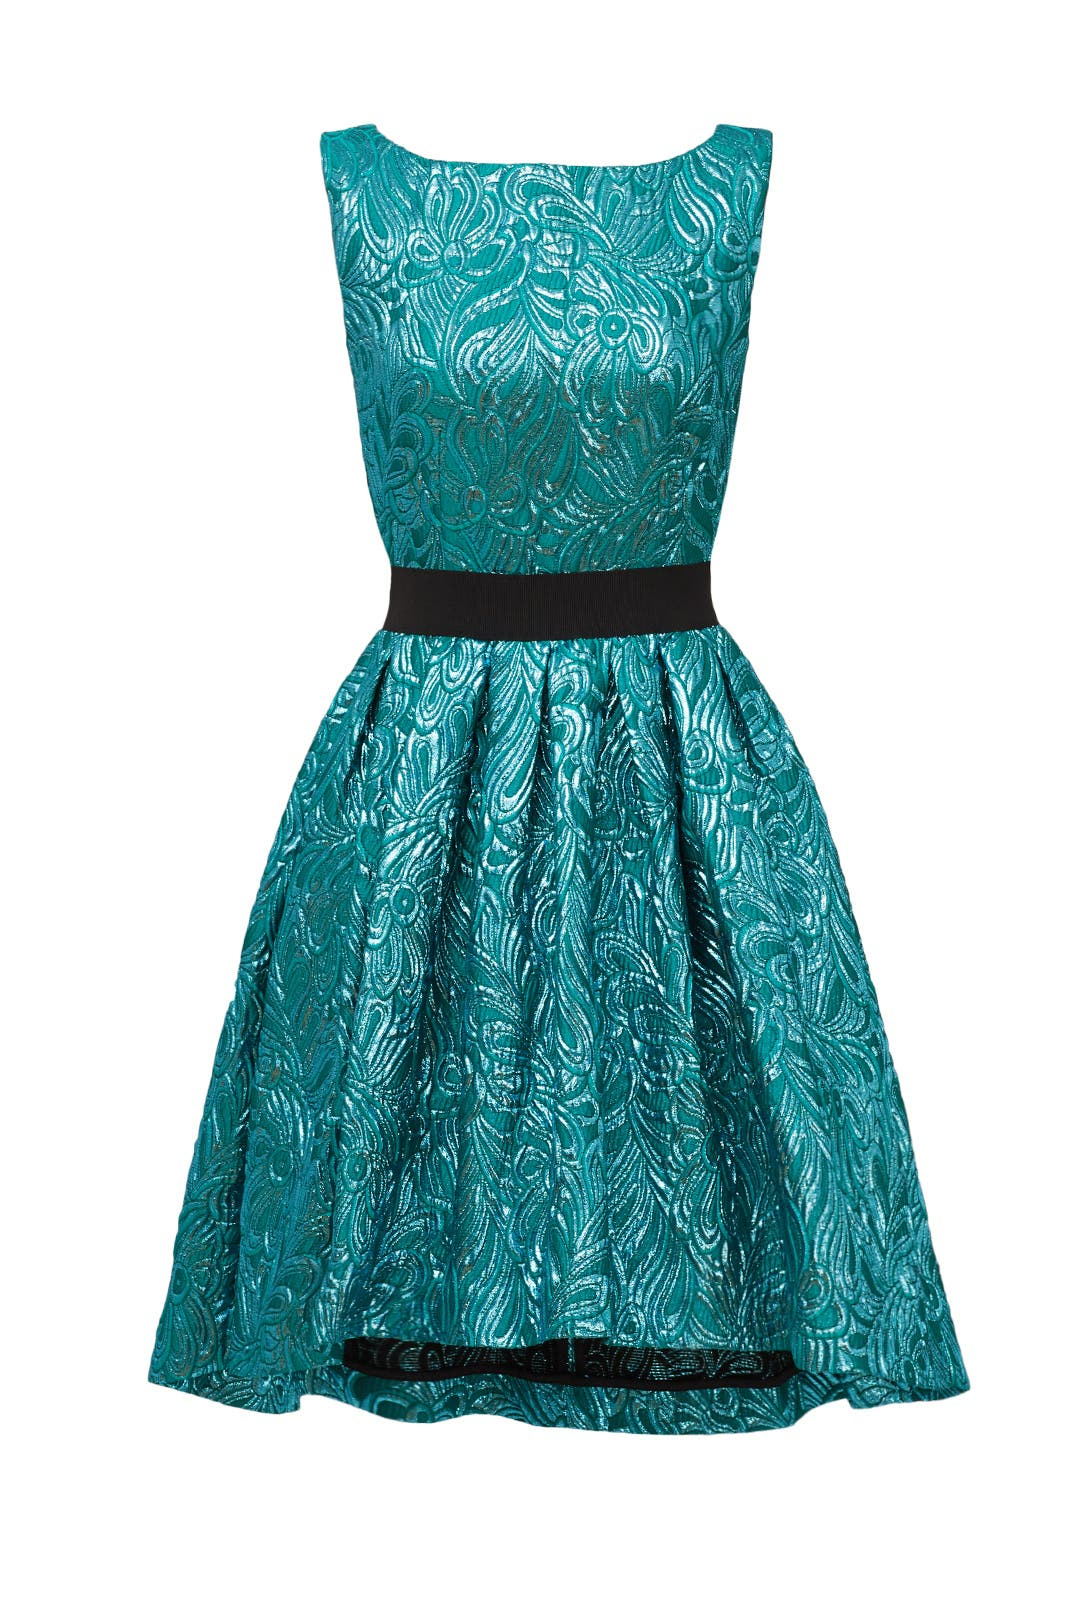 Shimmering Teal Dress by Christian Pellizzari for $80 - $100 | Rent ...